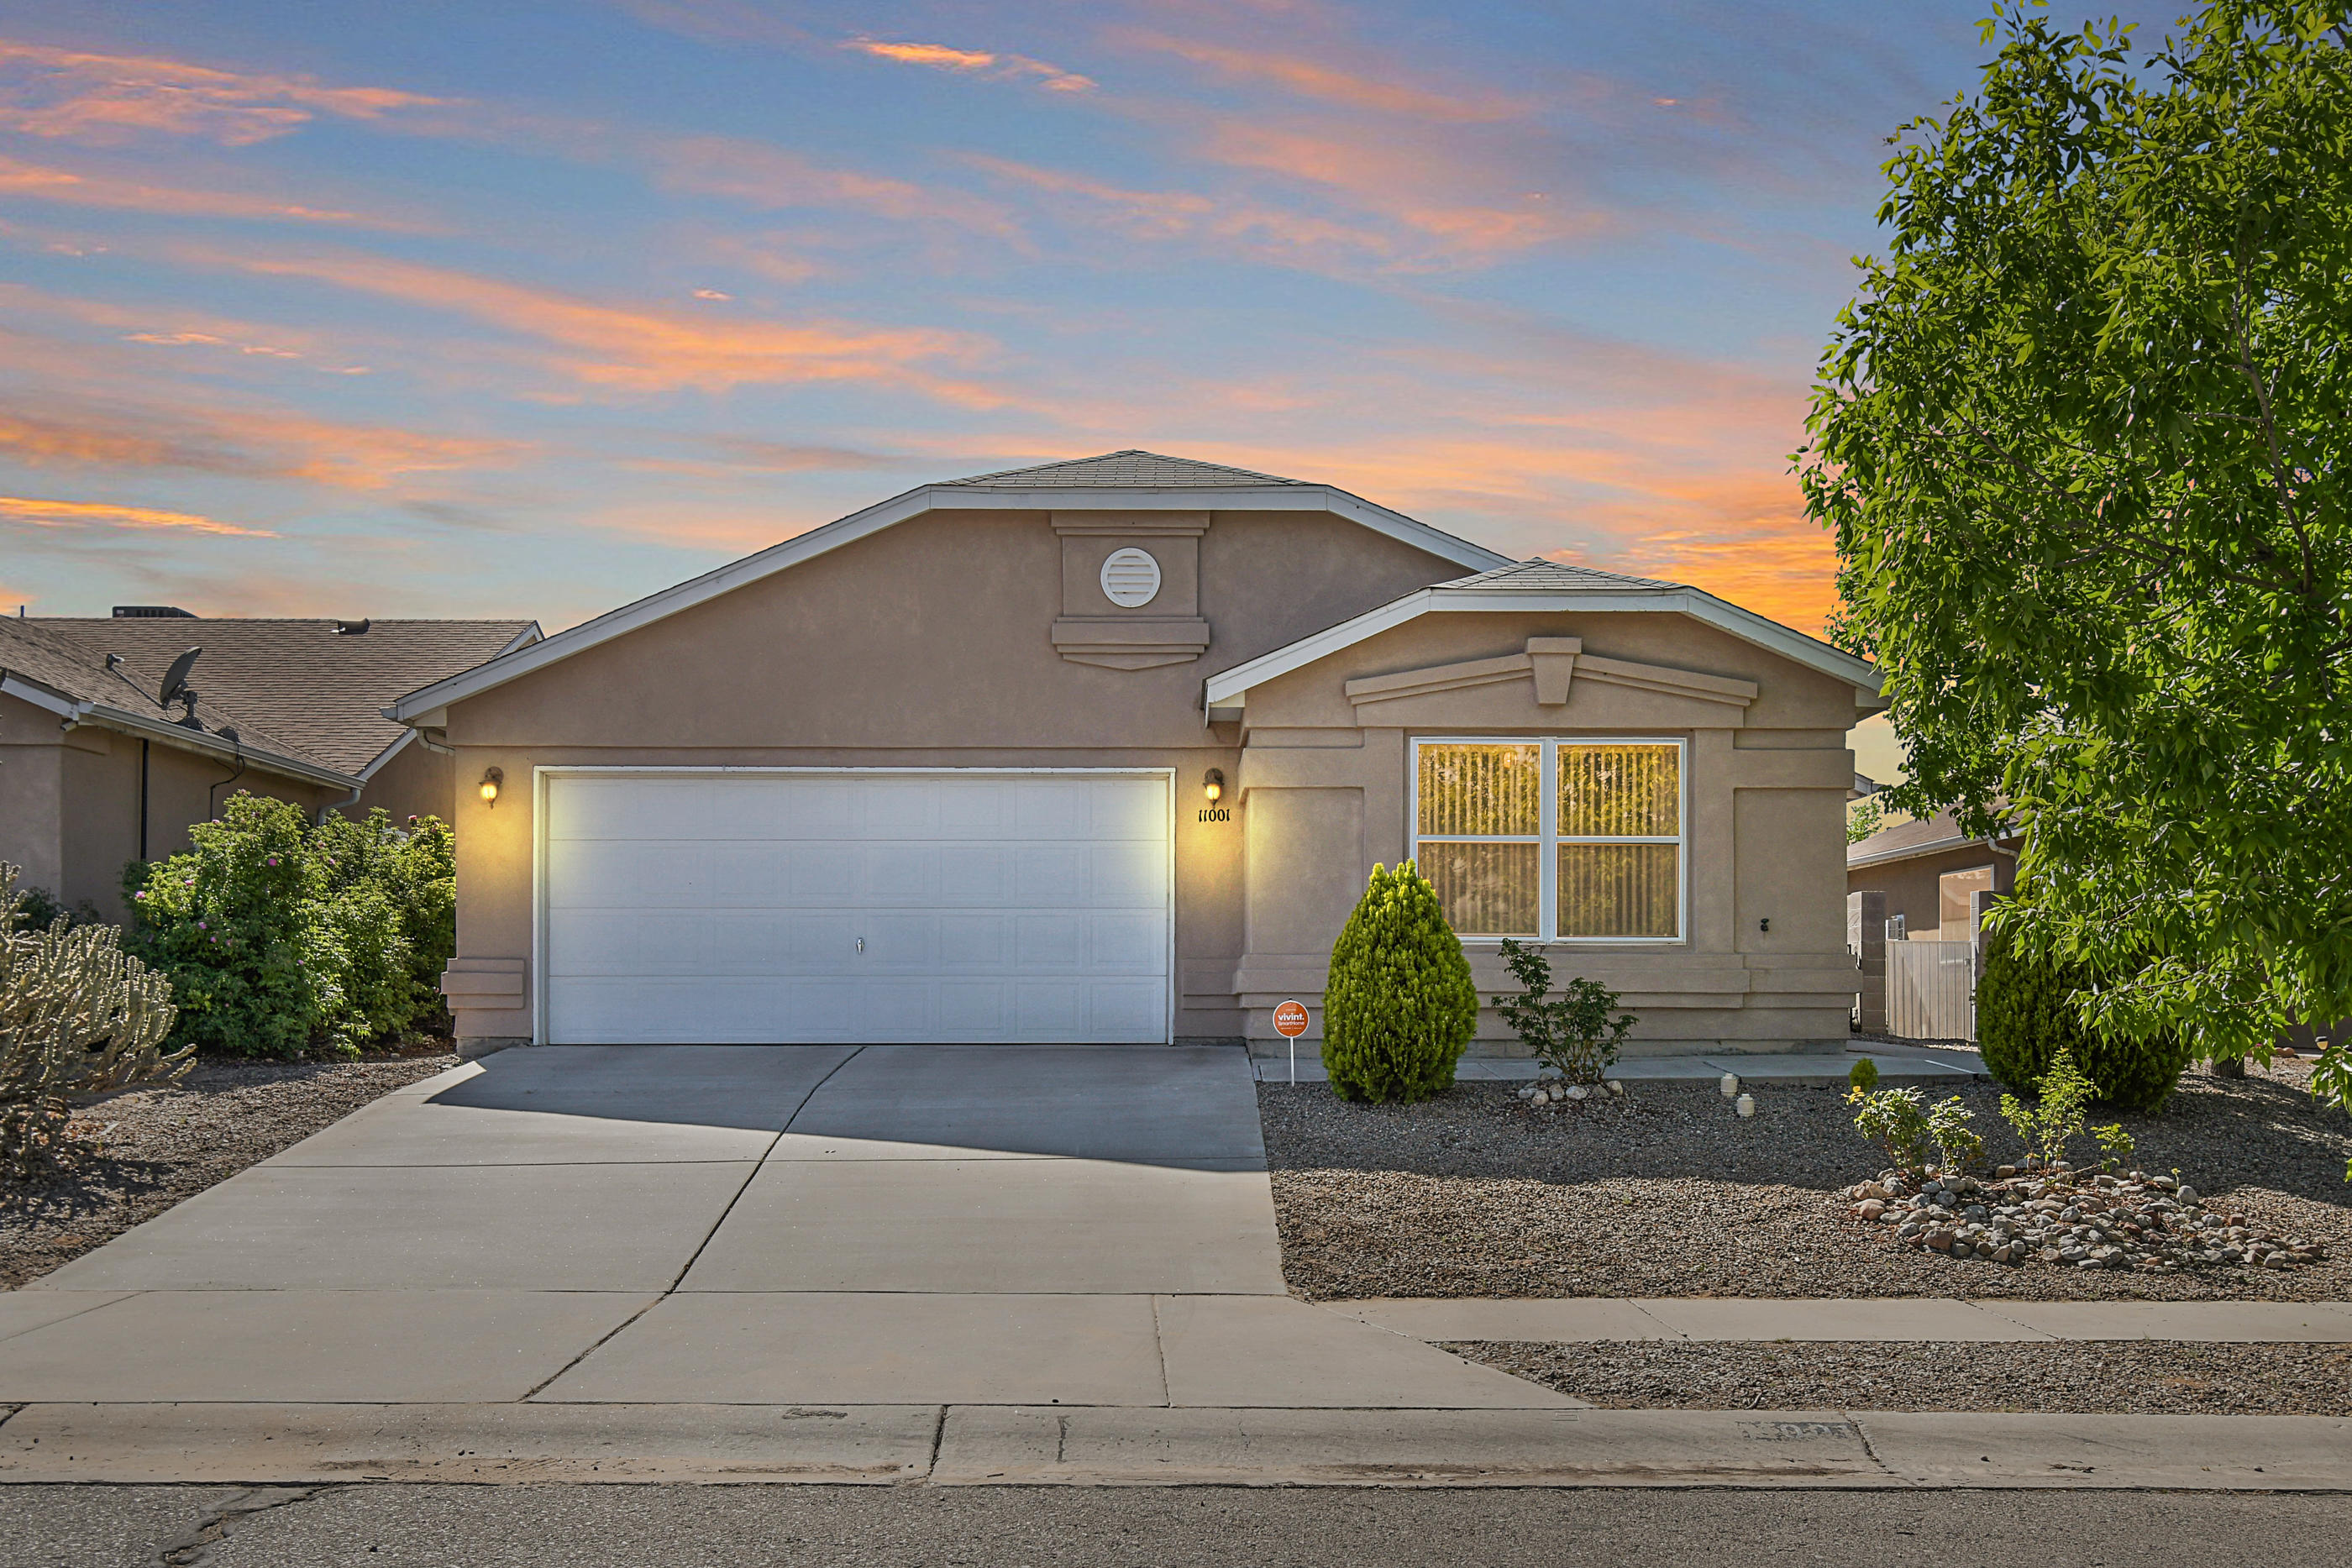 Nice well maintained 3 bedroom home with remodeled bathrooms, tile flooring throughout & carpet in bedrooms! Raised ceiling in living area. Master bedroom features a walk-in closet, and bathroom has a garden tub! Hall bathroom has a large shower stall, no tub! Walk-in pantry. New water heater with 9 yr warranty. Refrigerator, washer, and dryer stay!